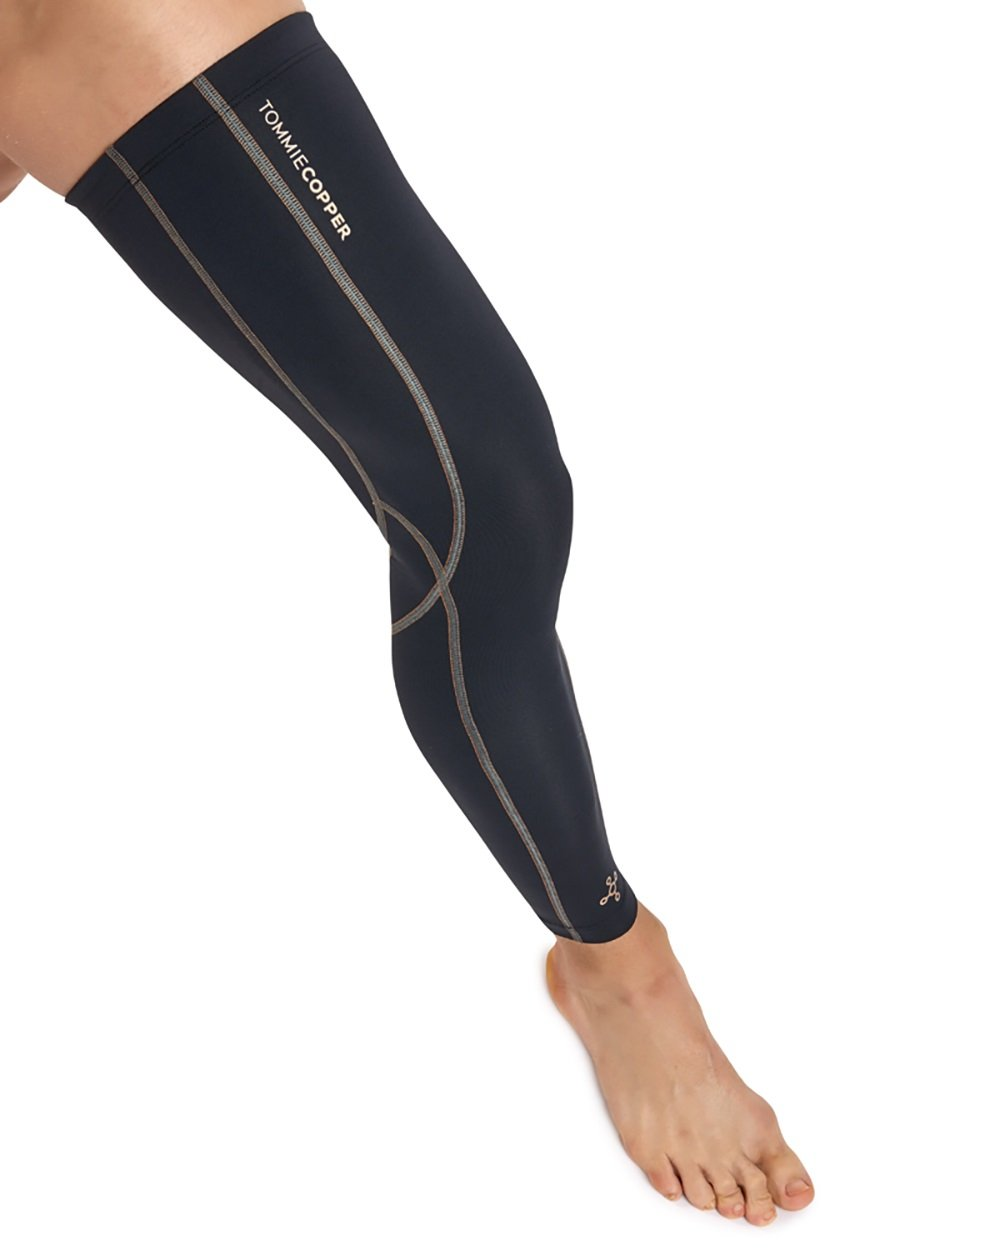 Tommie Copper Men's Performance Full Leg Sleeves 2.0, Small, Black by Tommie Copper (Image #2)